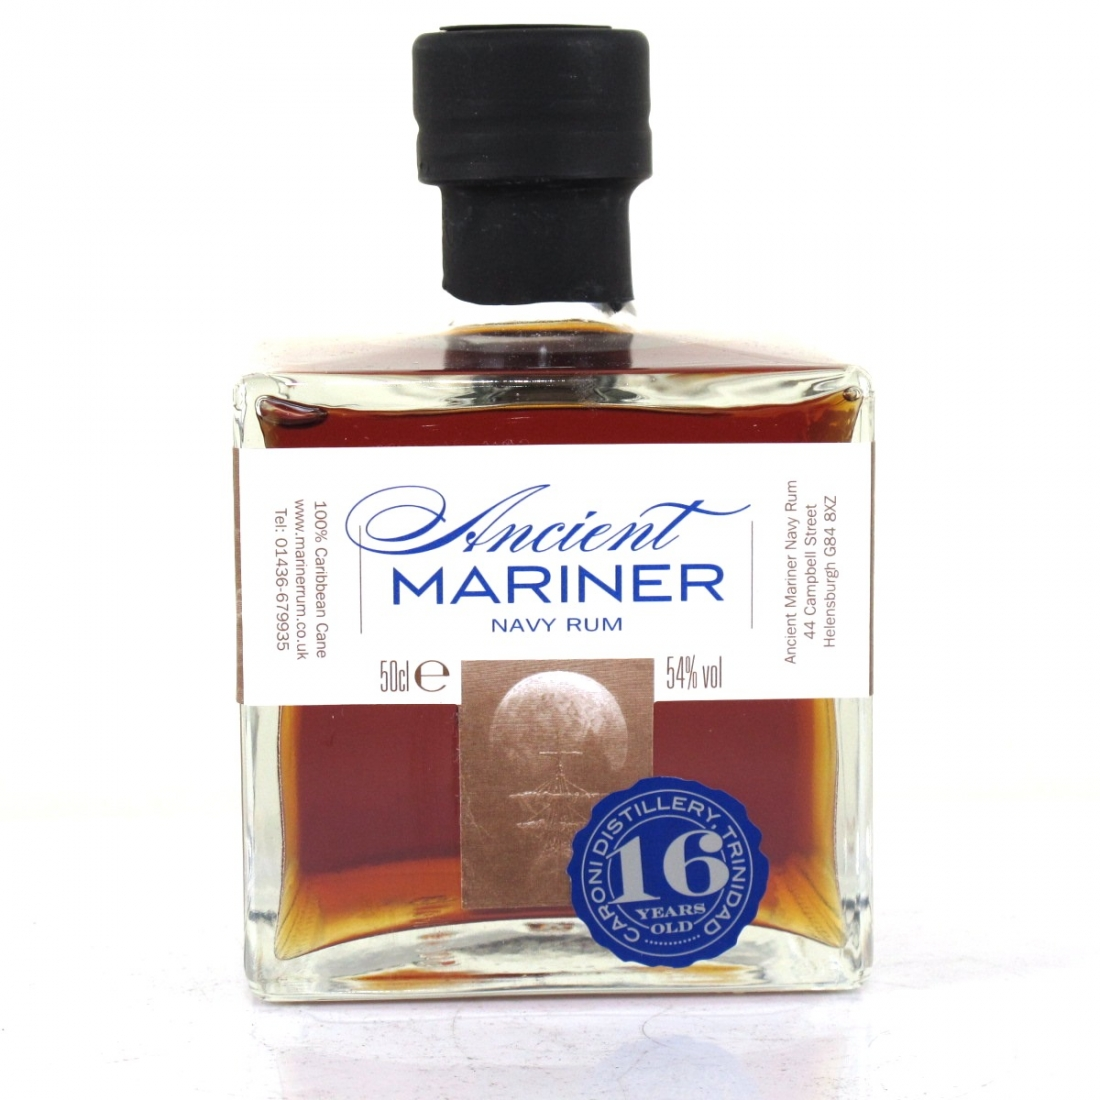 Caroni Ancient Mariner 16 Year Old Navy Rum